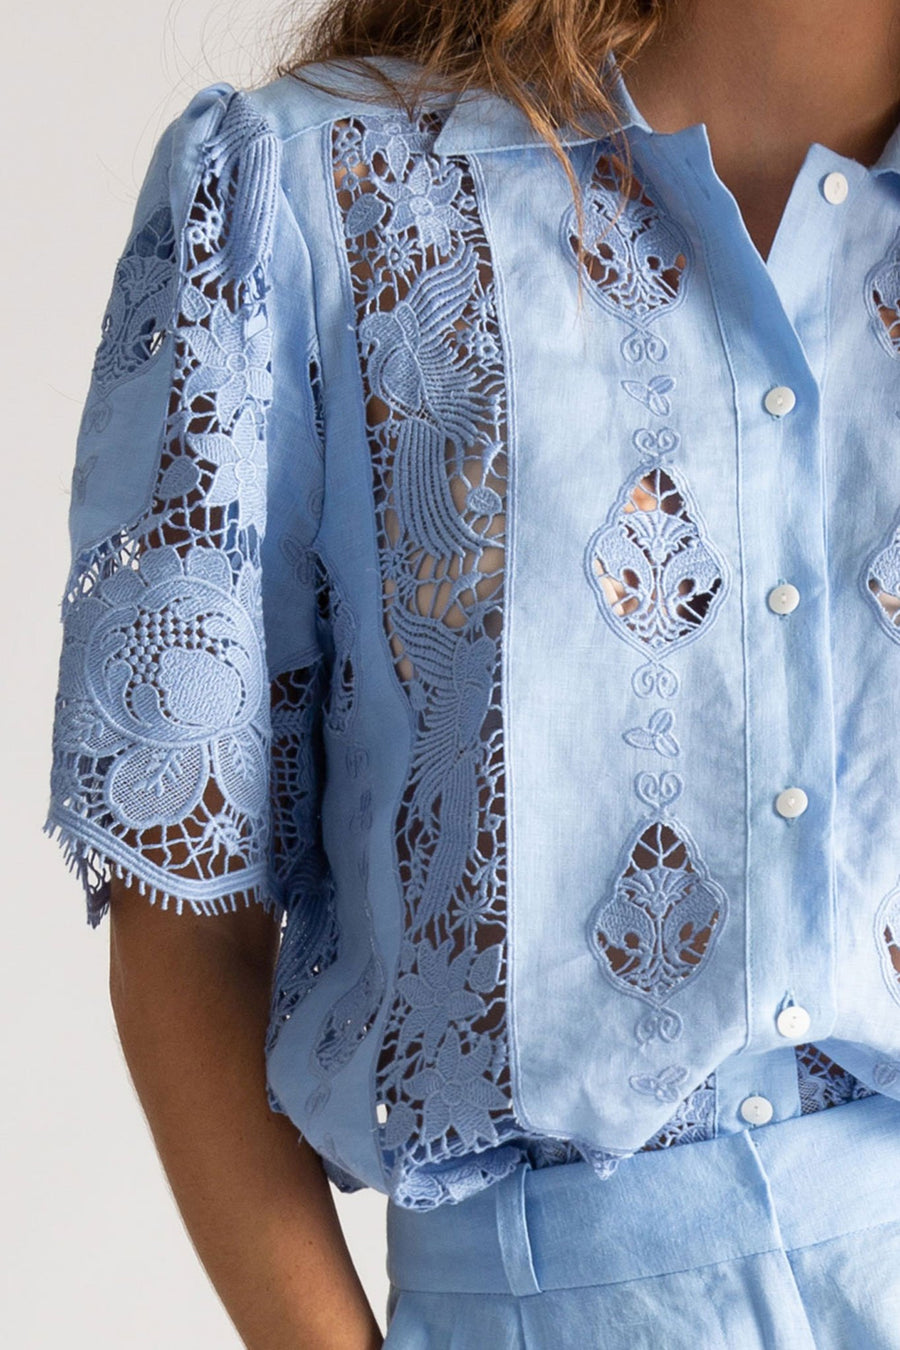 This is a detail photo of a woman wearing a blue linen and lace top with button down front and linen collar. The photo shows detail of the lace design which includes birds and flowers. The top has a short sleeve with gathering at the shoulder to add volume.